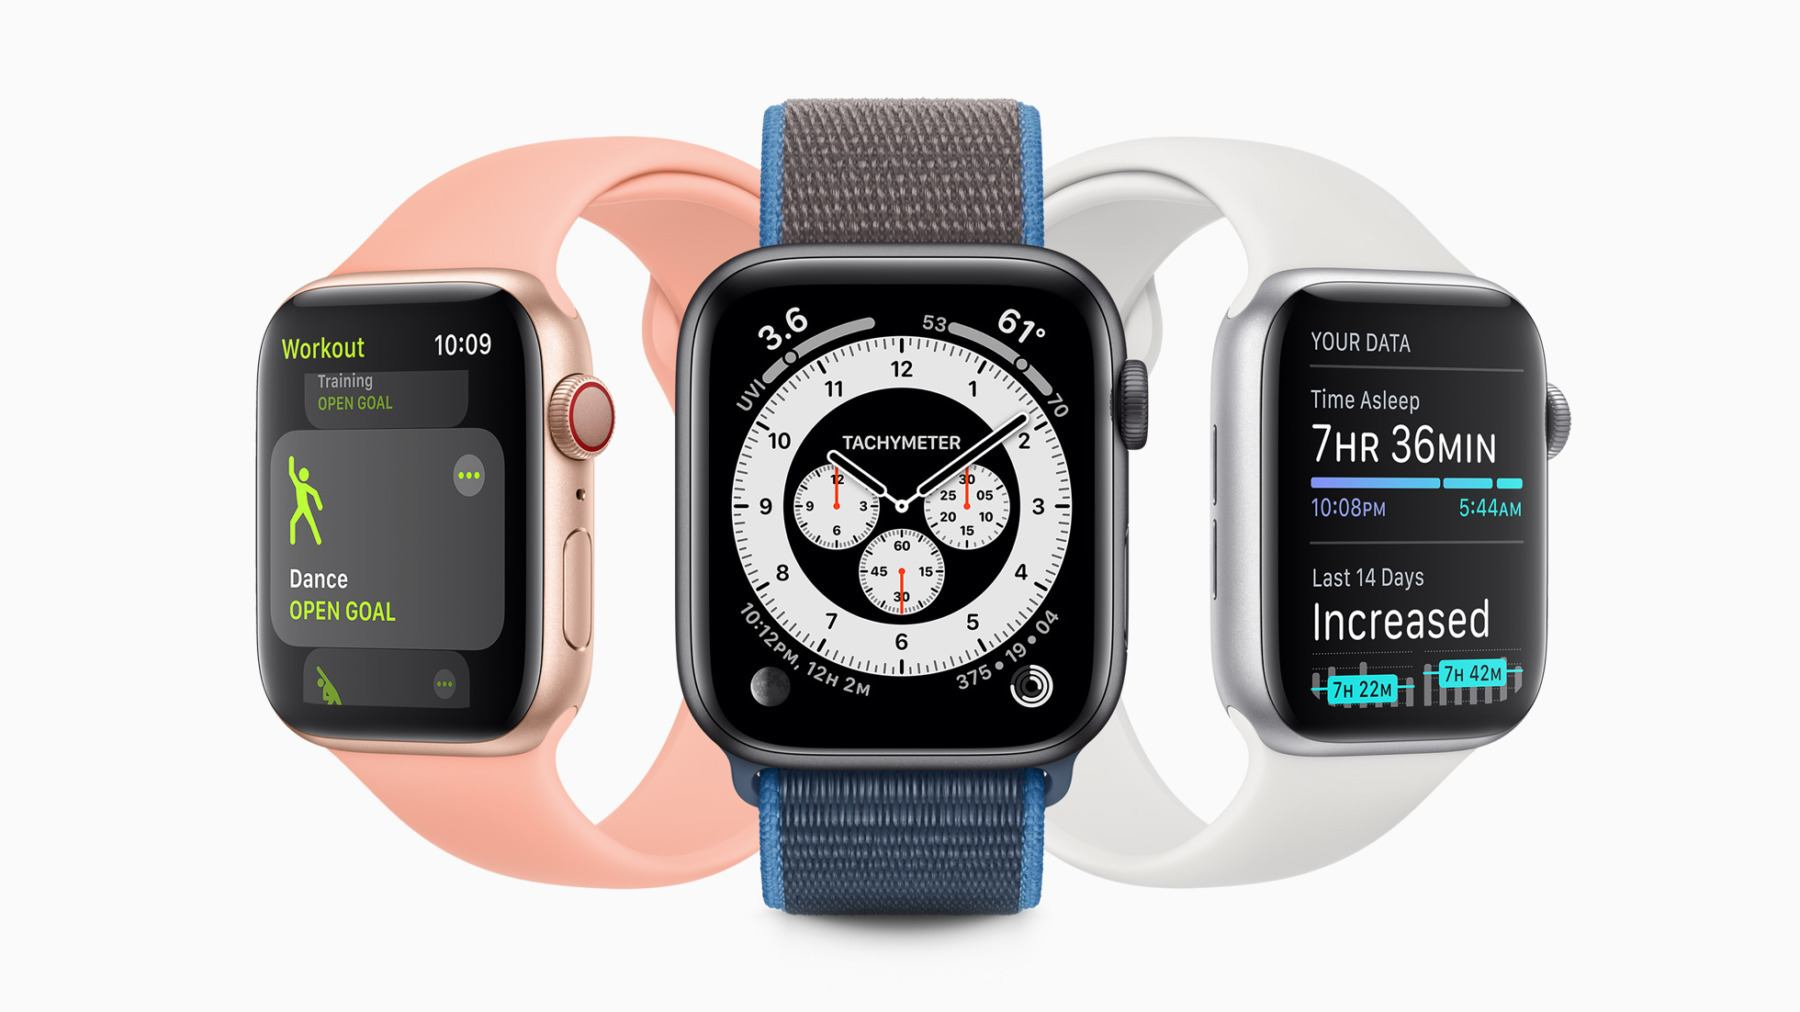 Three Apple Watches, a popular fitness tracker in 2020